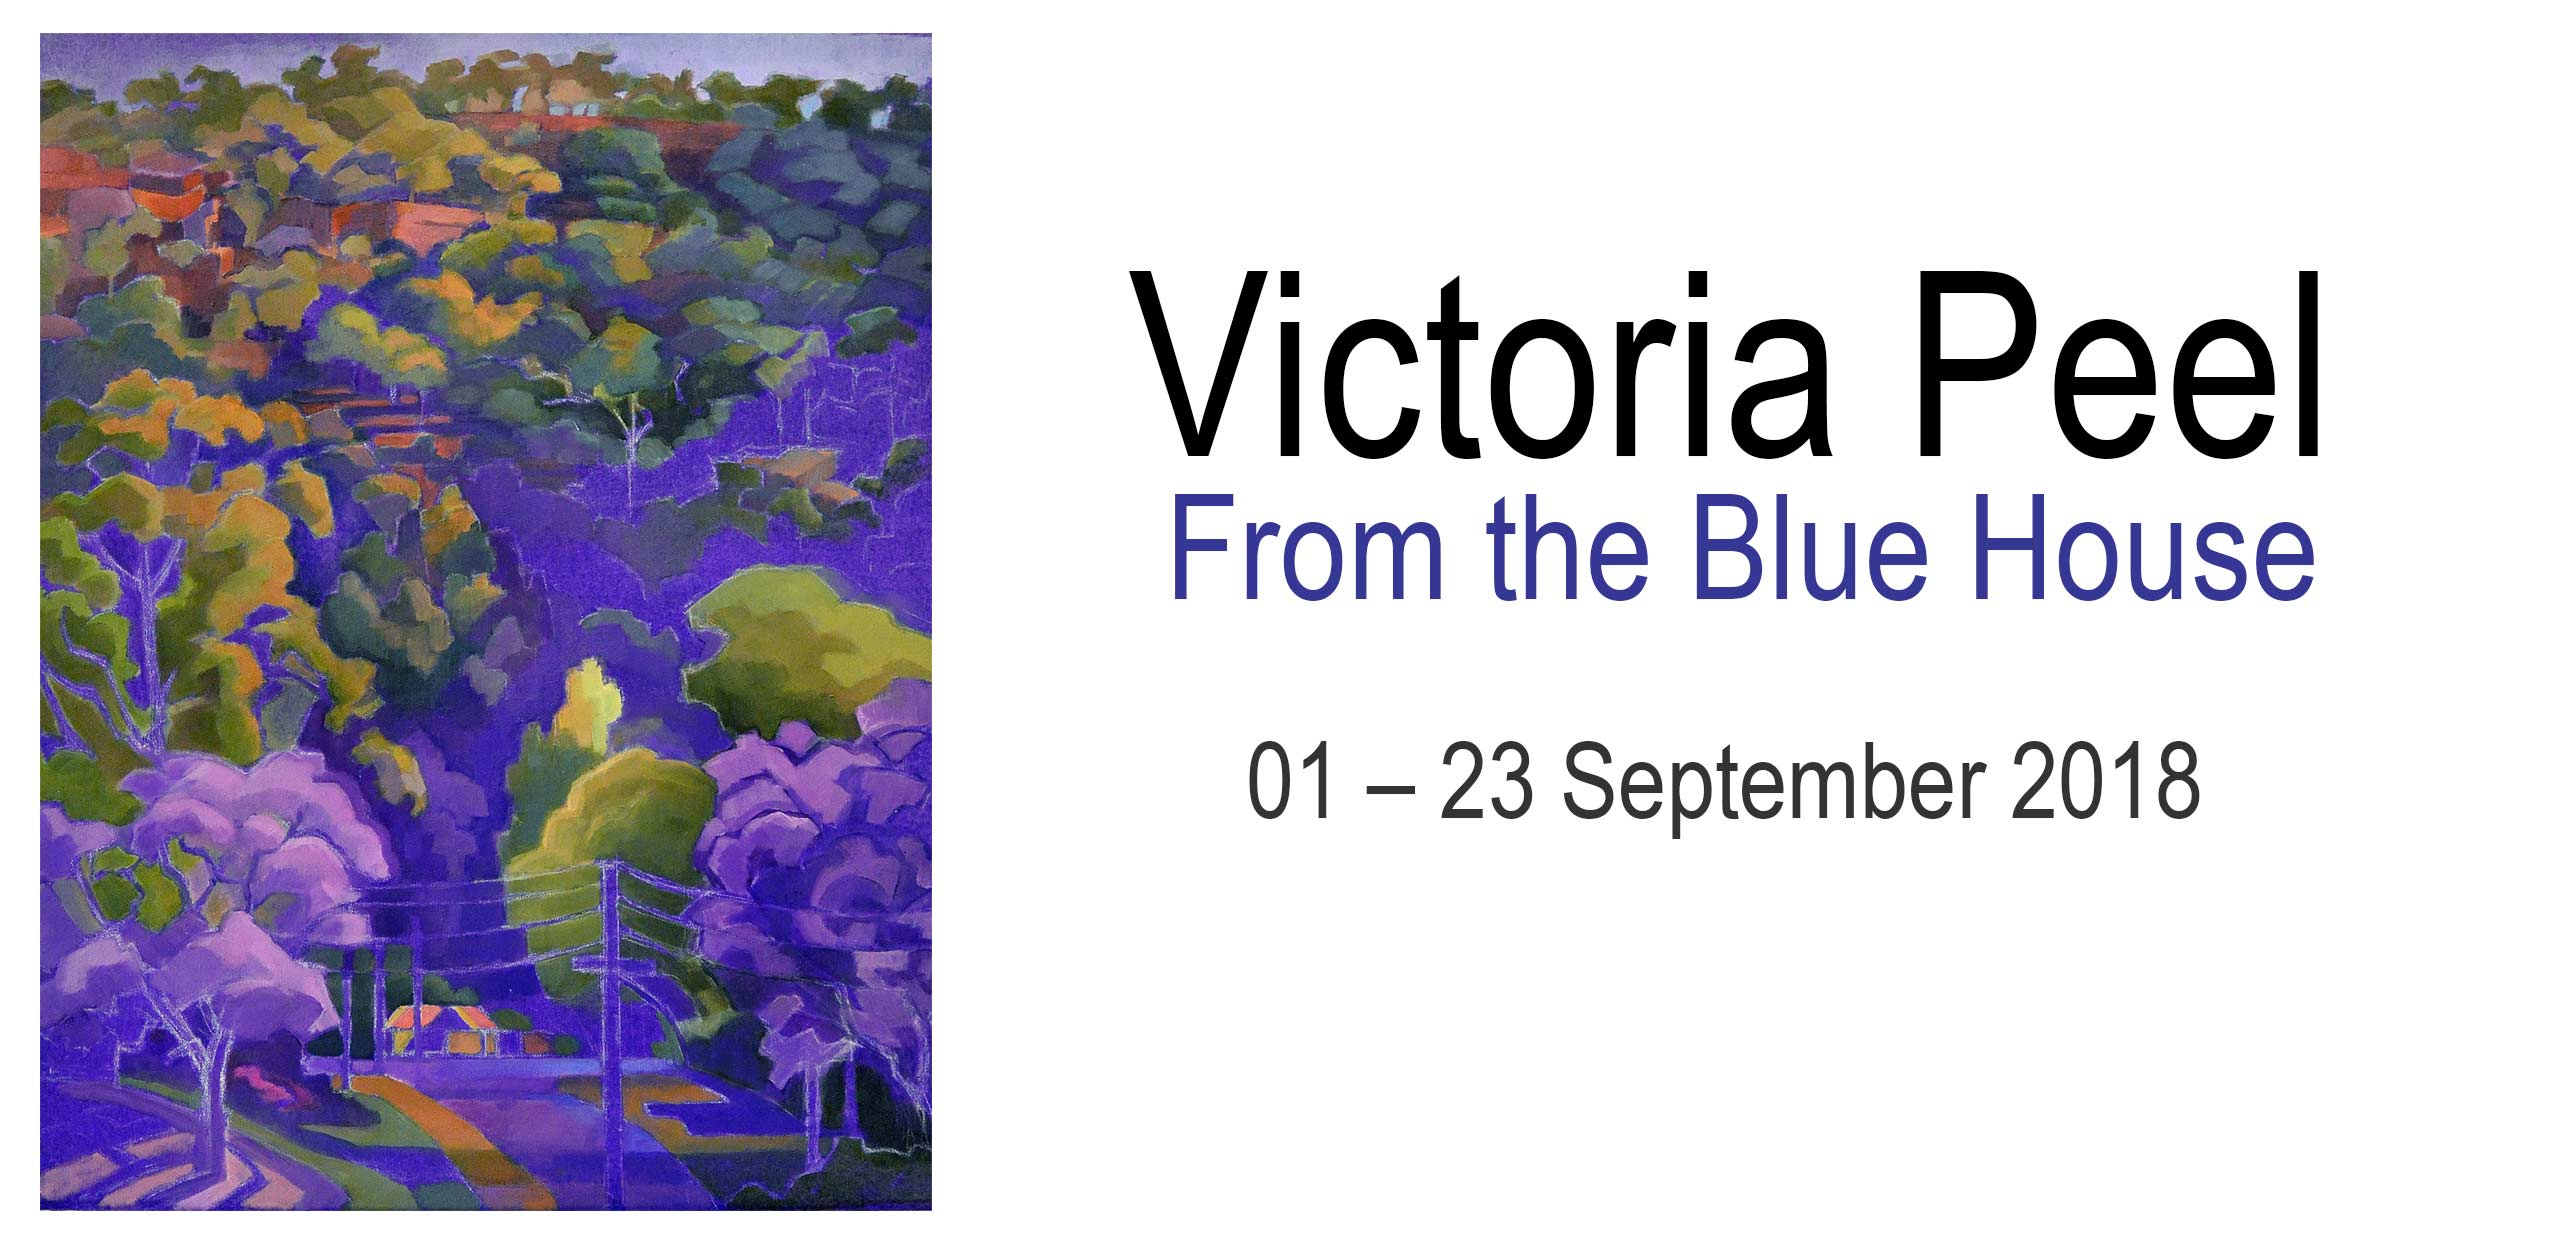 Artsite Galleries Exhibition | Victoria Peel |From the Blue House | 01 - 23 September 2018